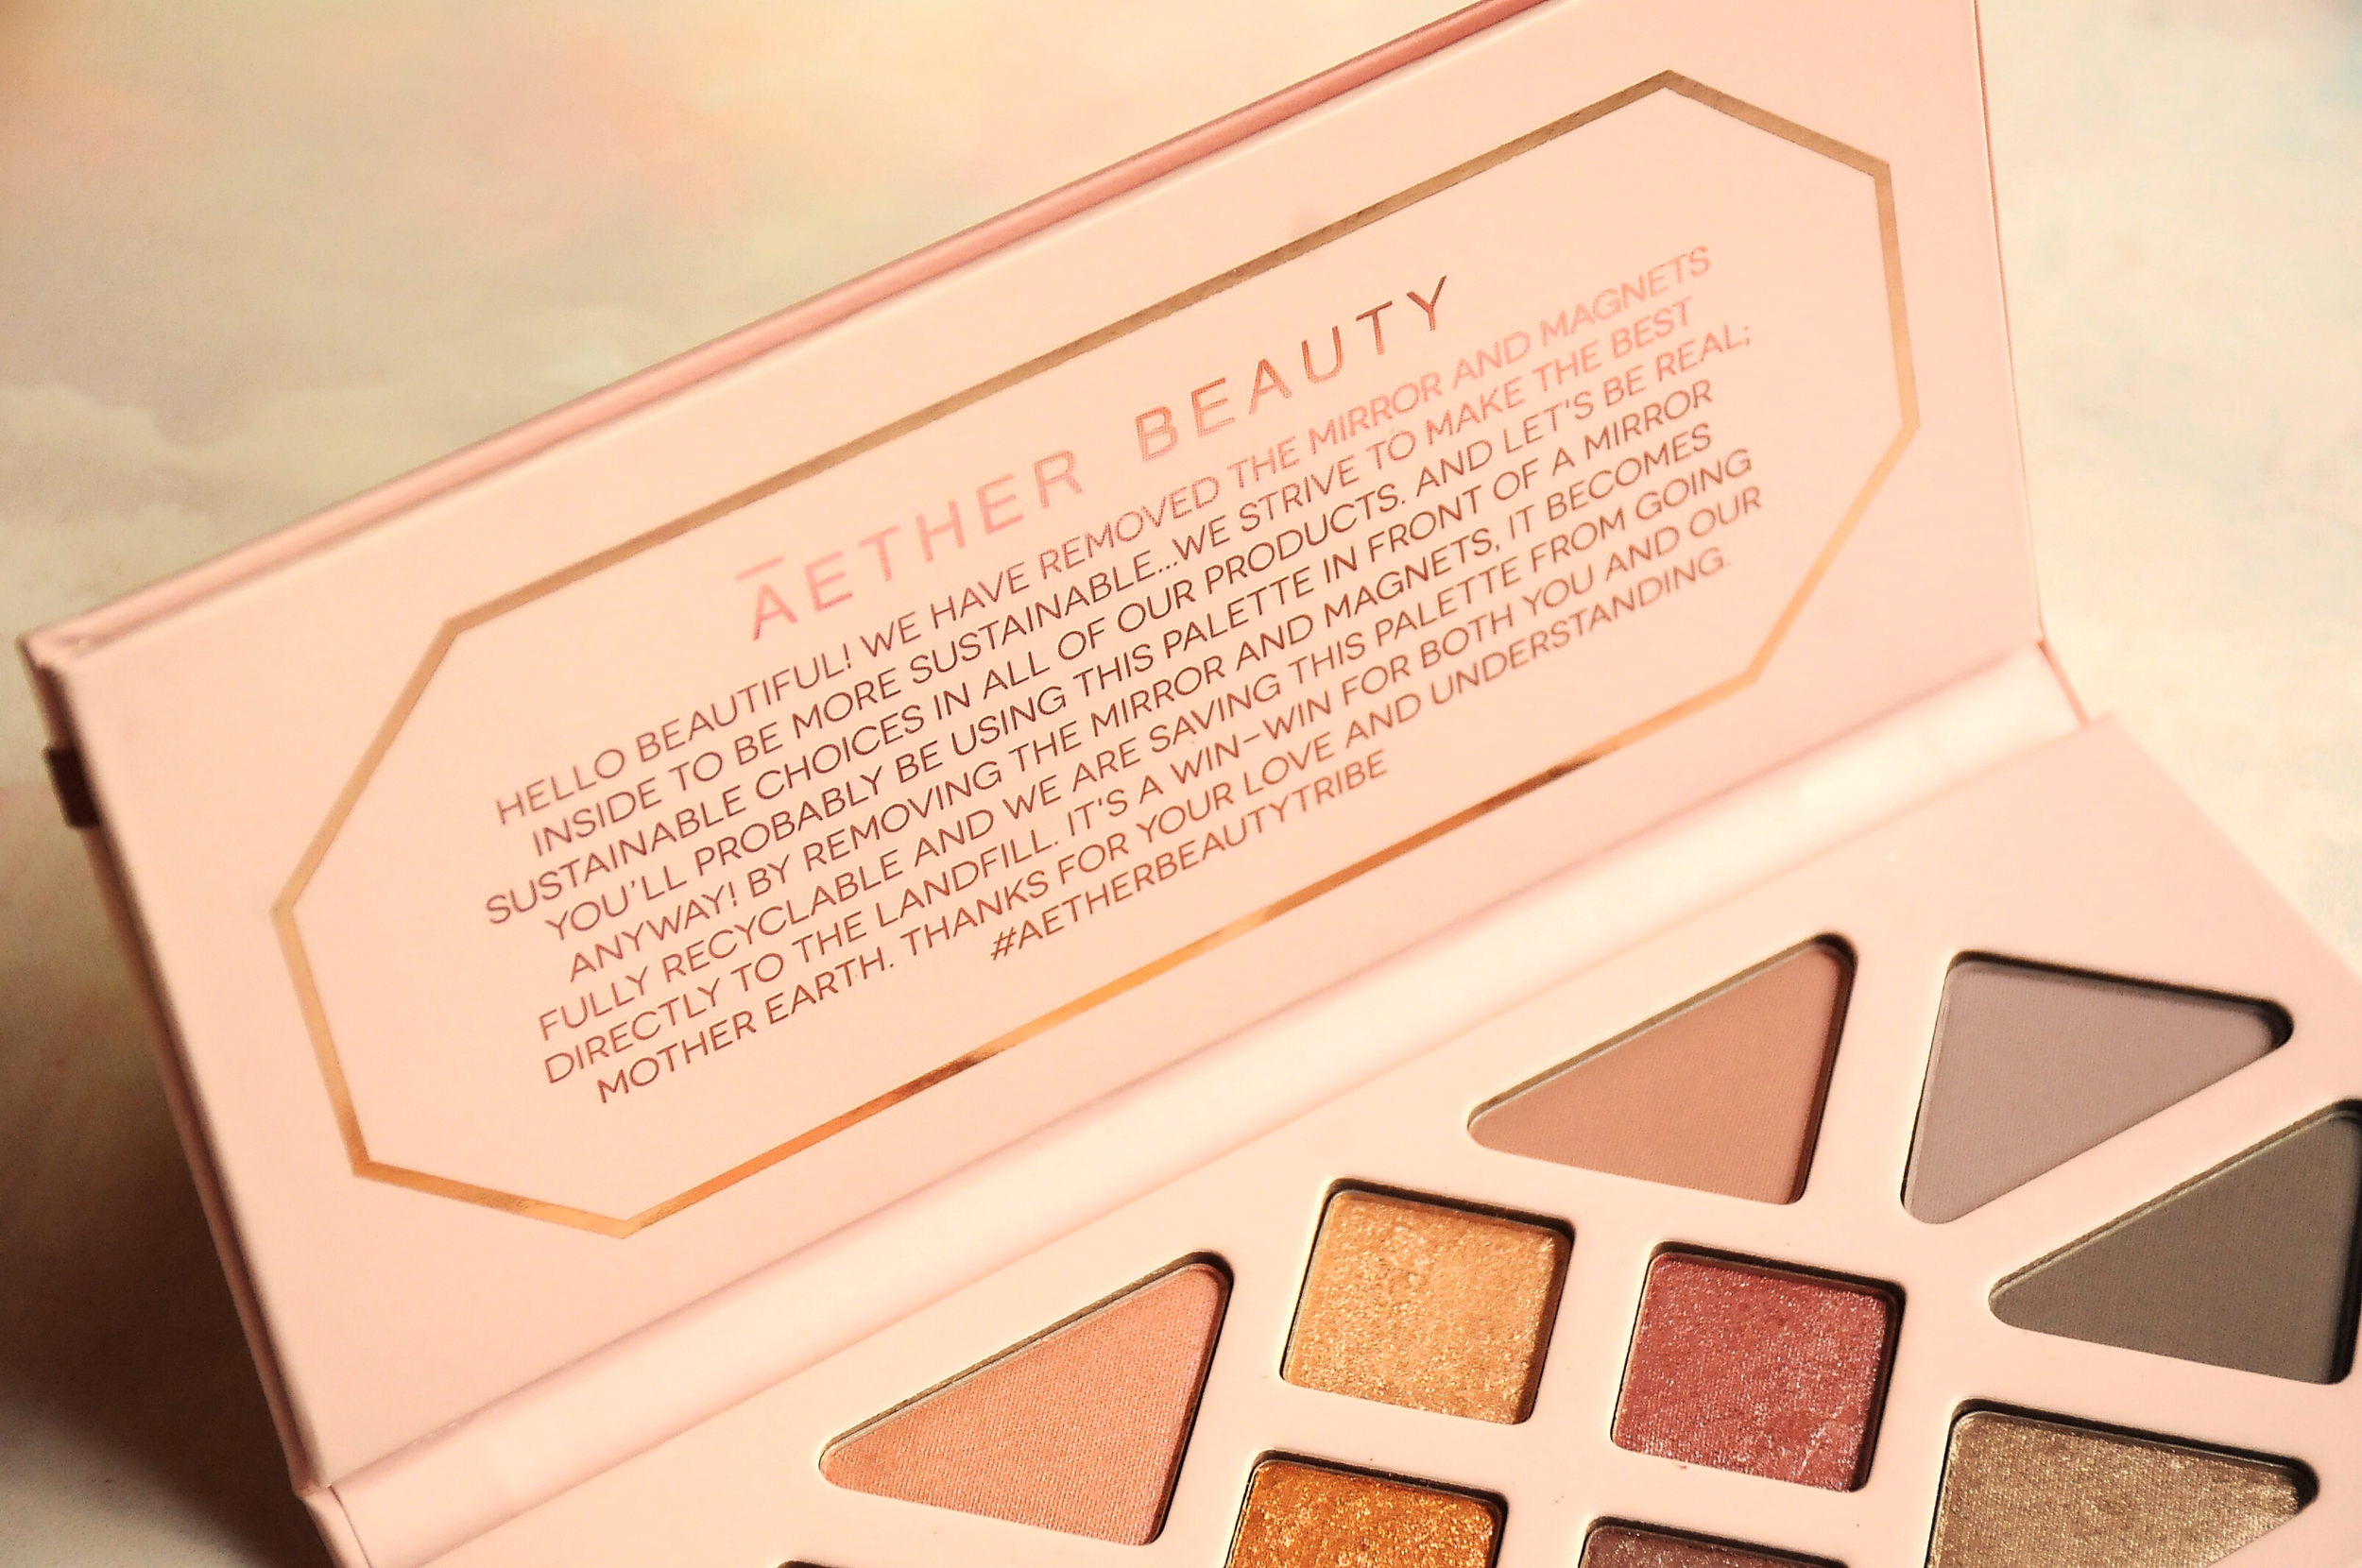 Aether Beauty Rose Quartz Palette Review + Swatches